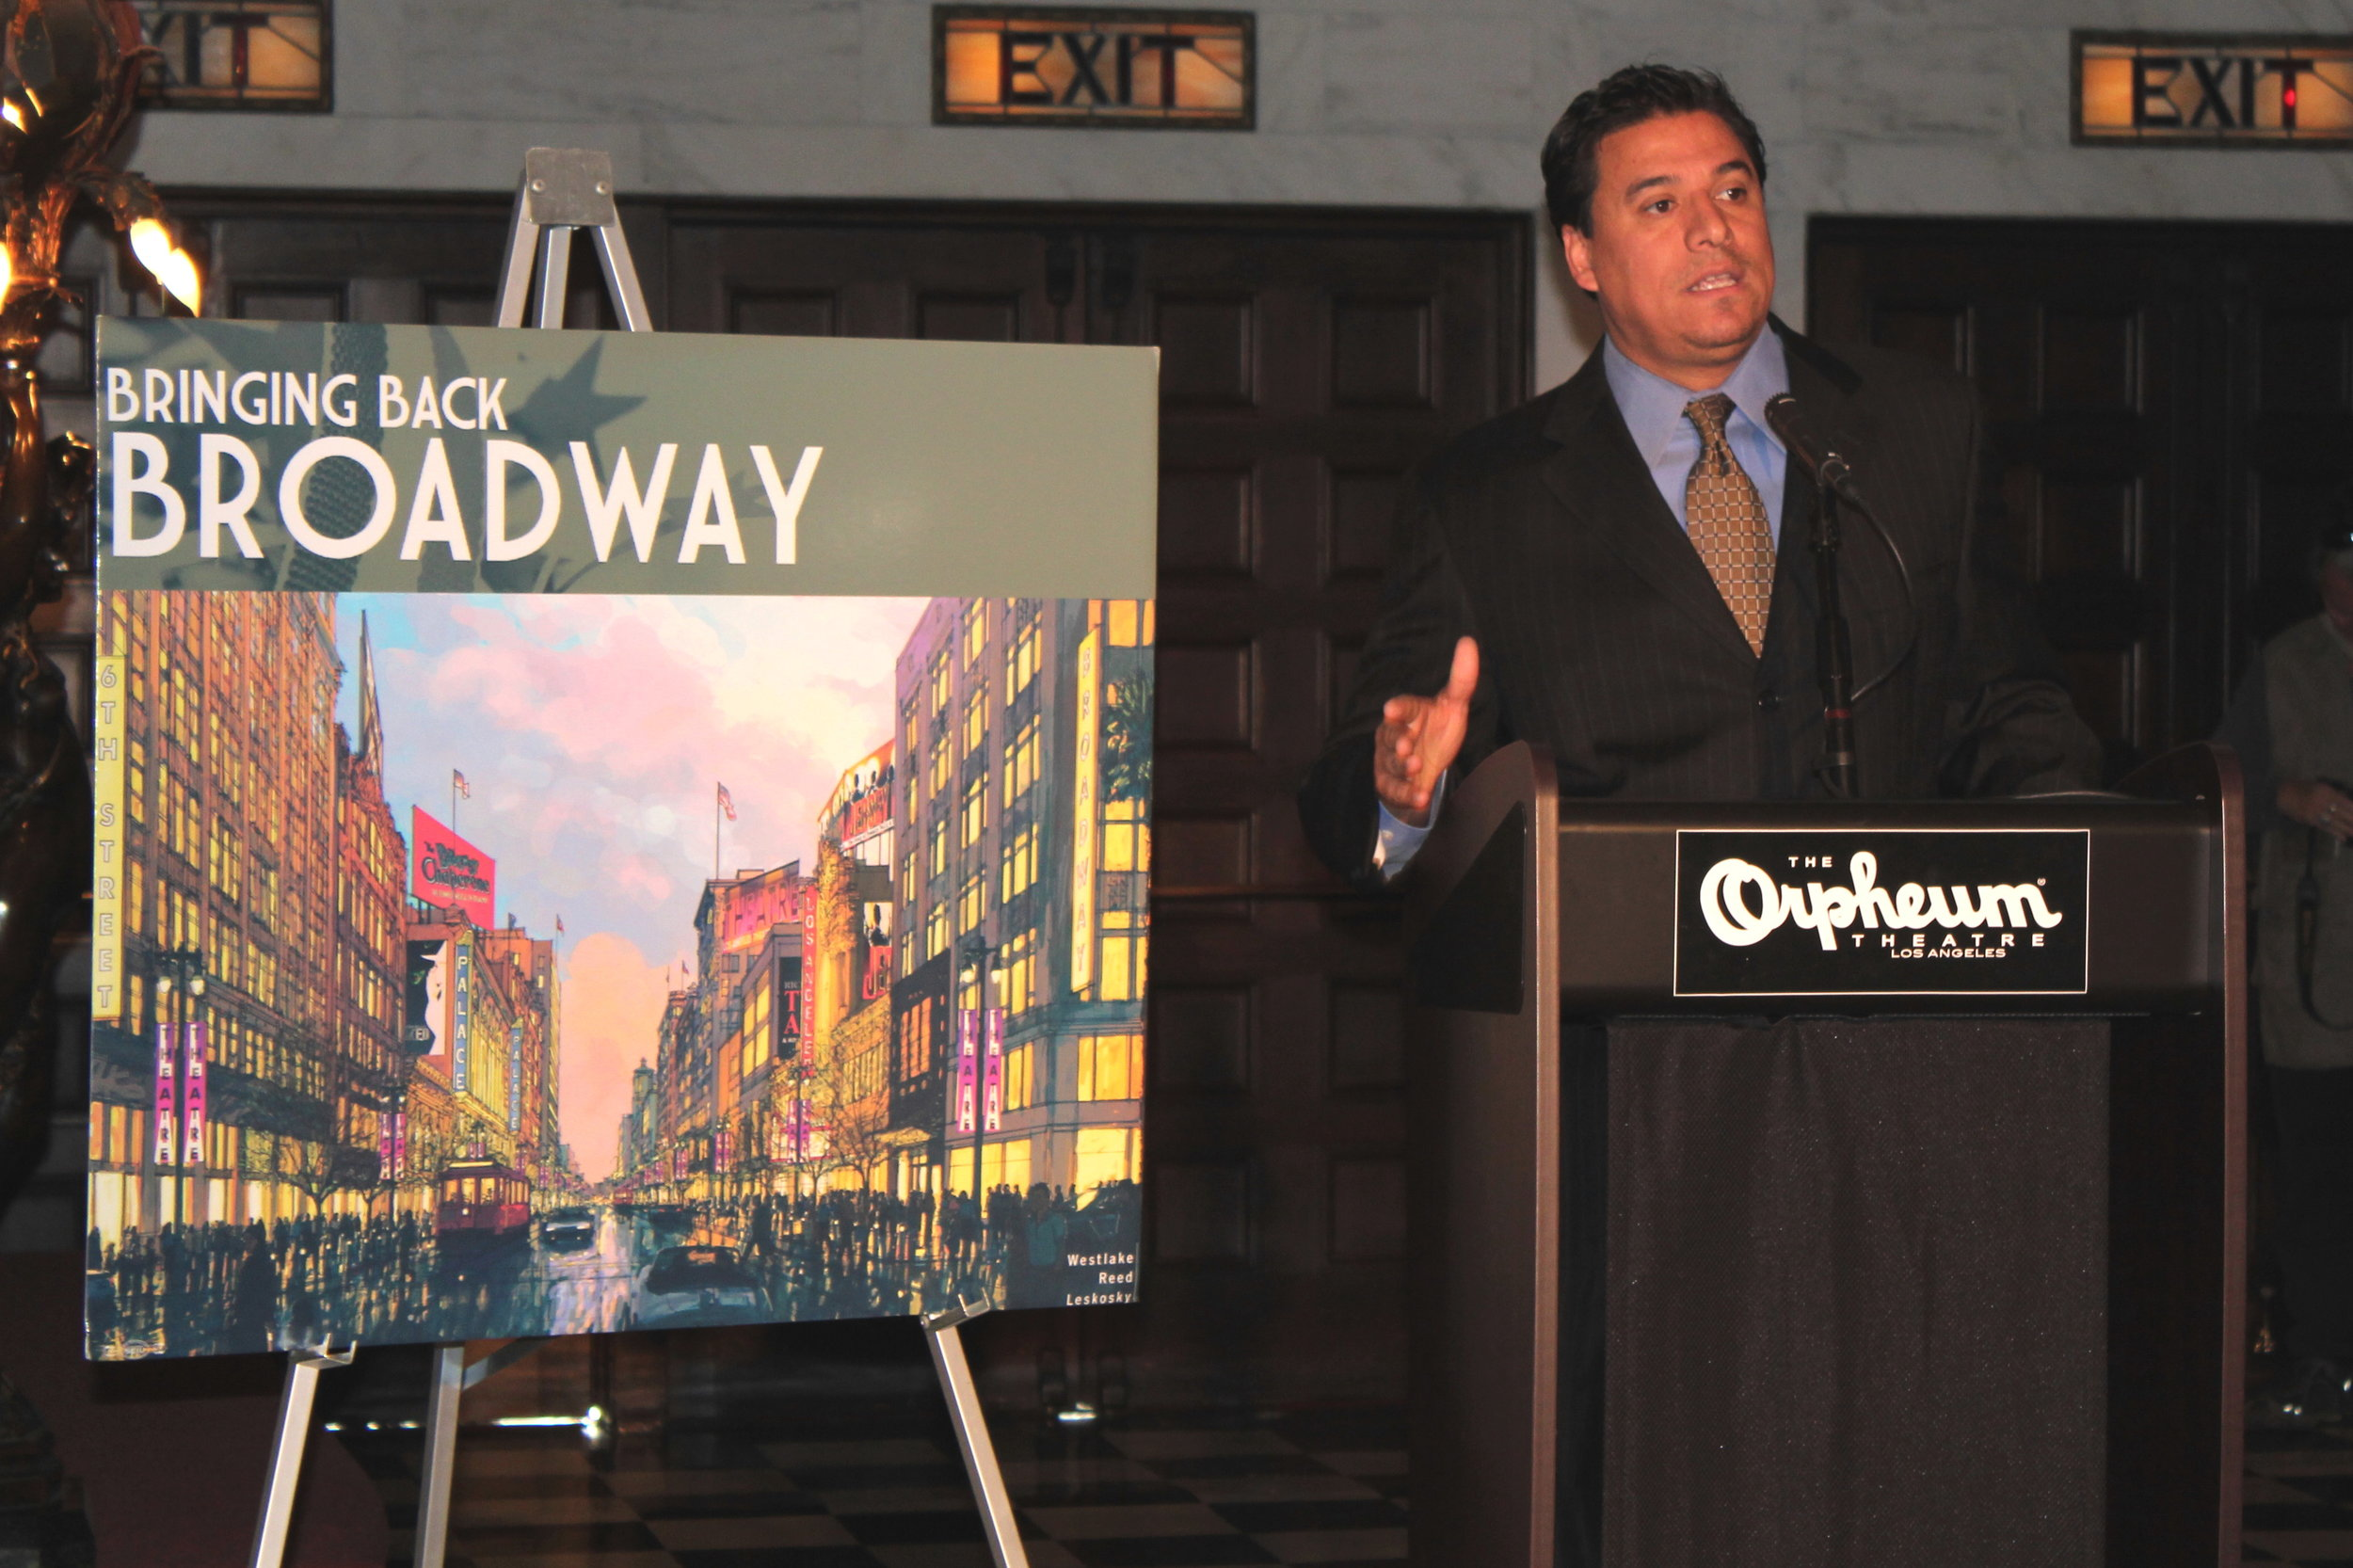 councilmember-jose-huizar-cd-14-los-angeles-downtown-bringing-back-broadway-orpheum-theatre_5389850572_o.jpg